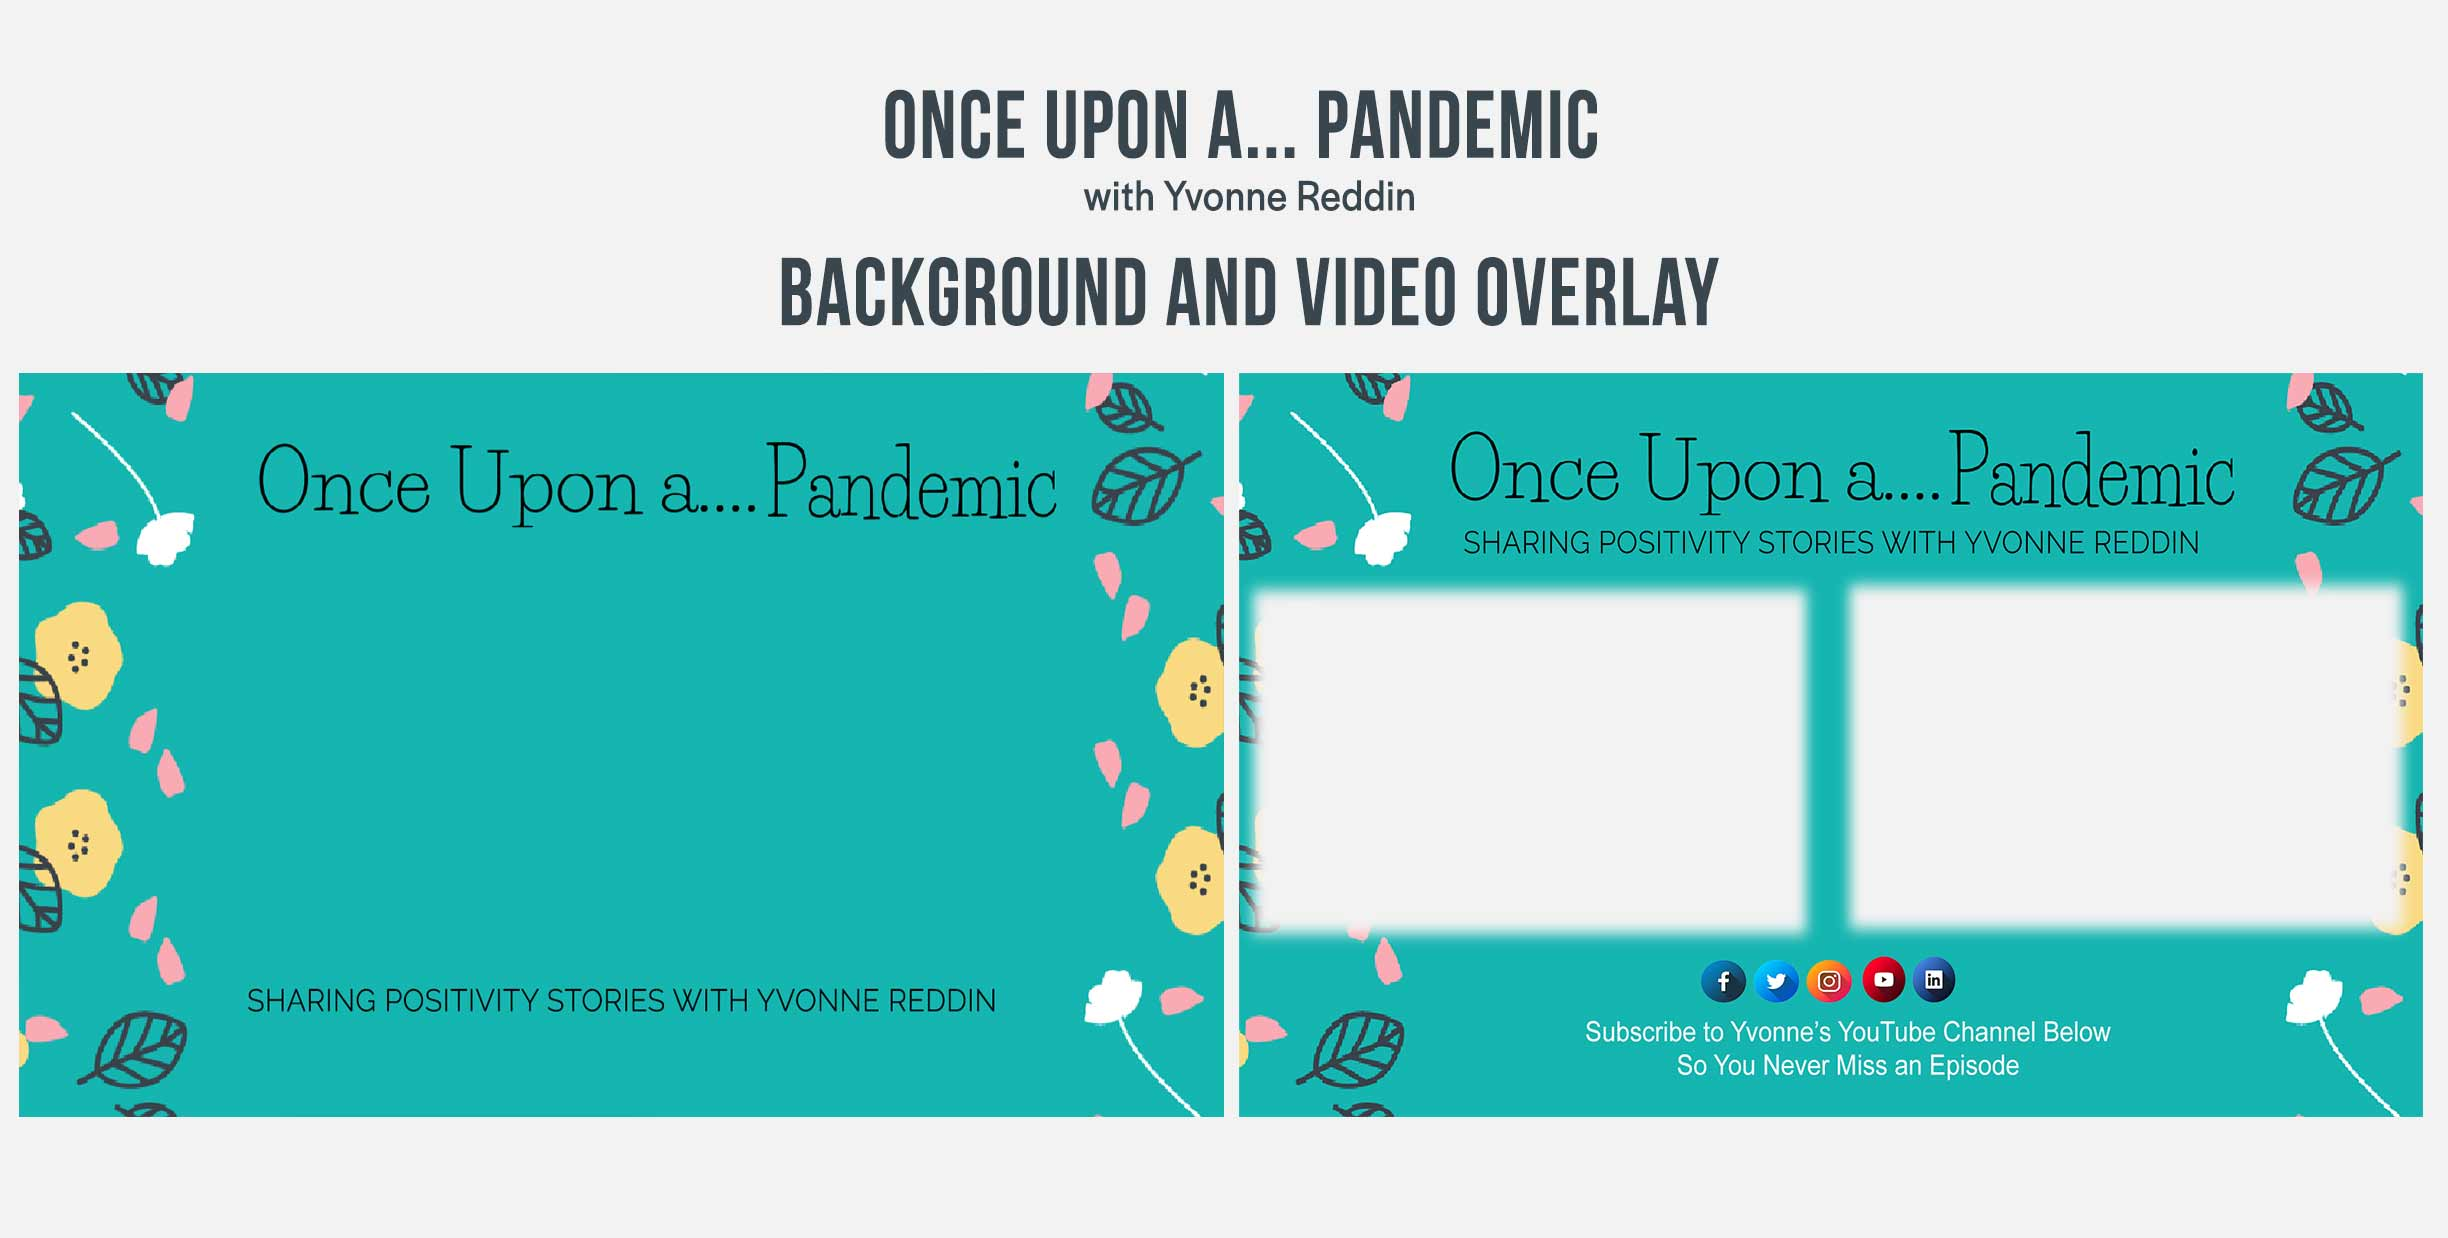 Once Upon a... Pandemic Graphic Design Backgrounds and Overlays from Kompass Media Dublin Ireland